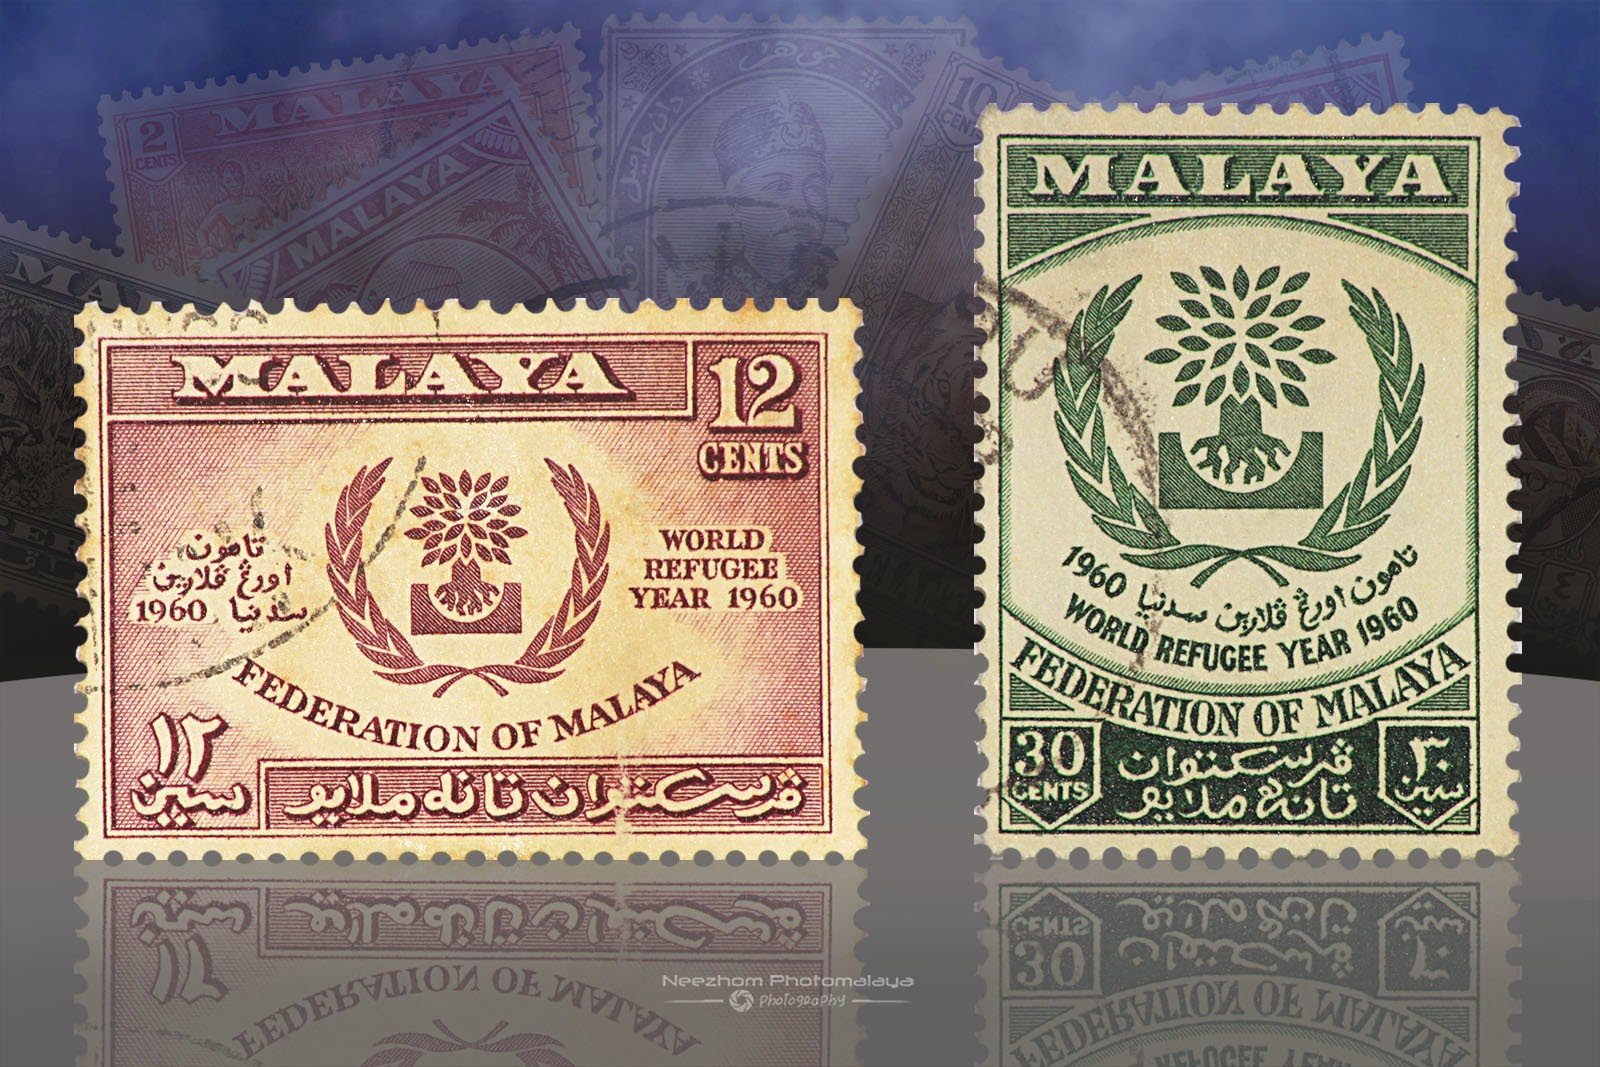 Setem Malaya 12 Cents World Refugee Year 1960, 30 Cents World Refugee Year 1960